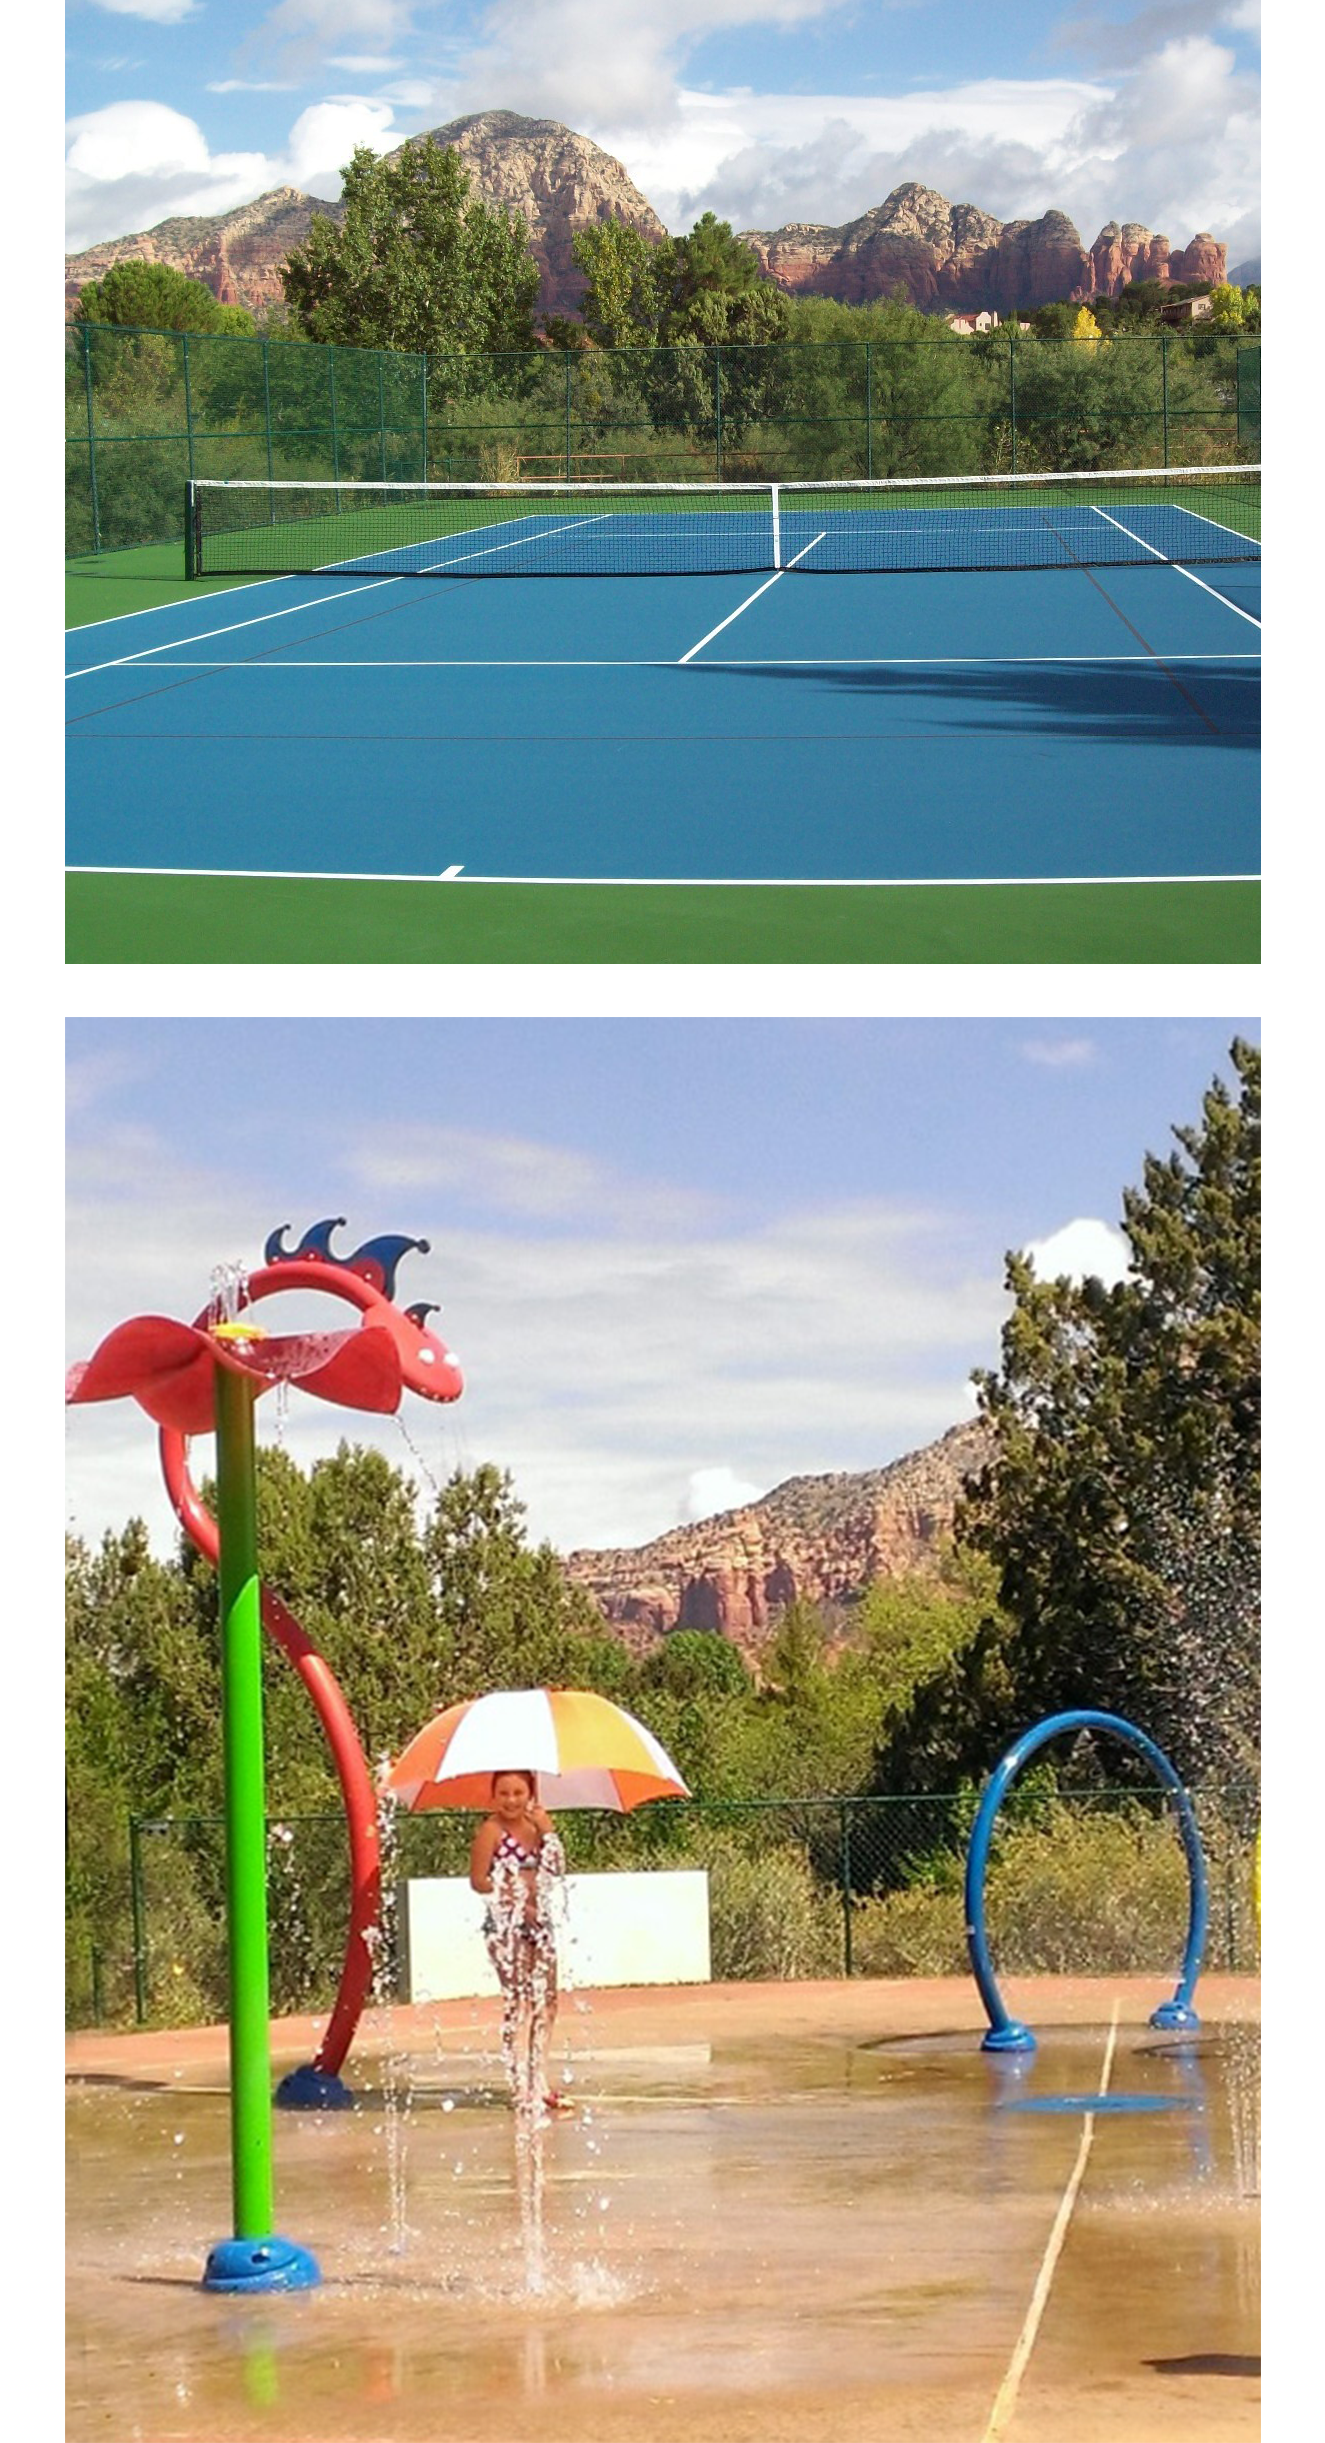 Sunset Park composite showing tennis court and splash pad.